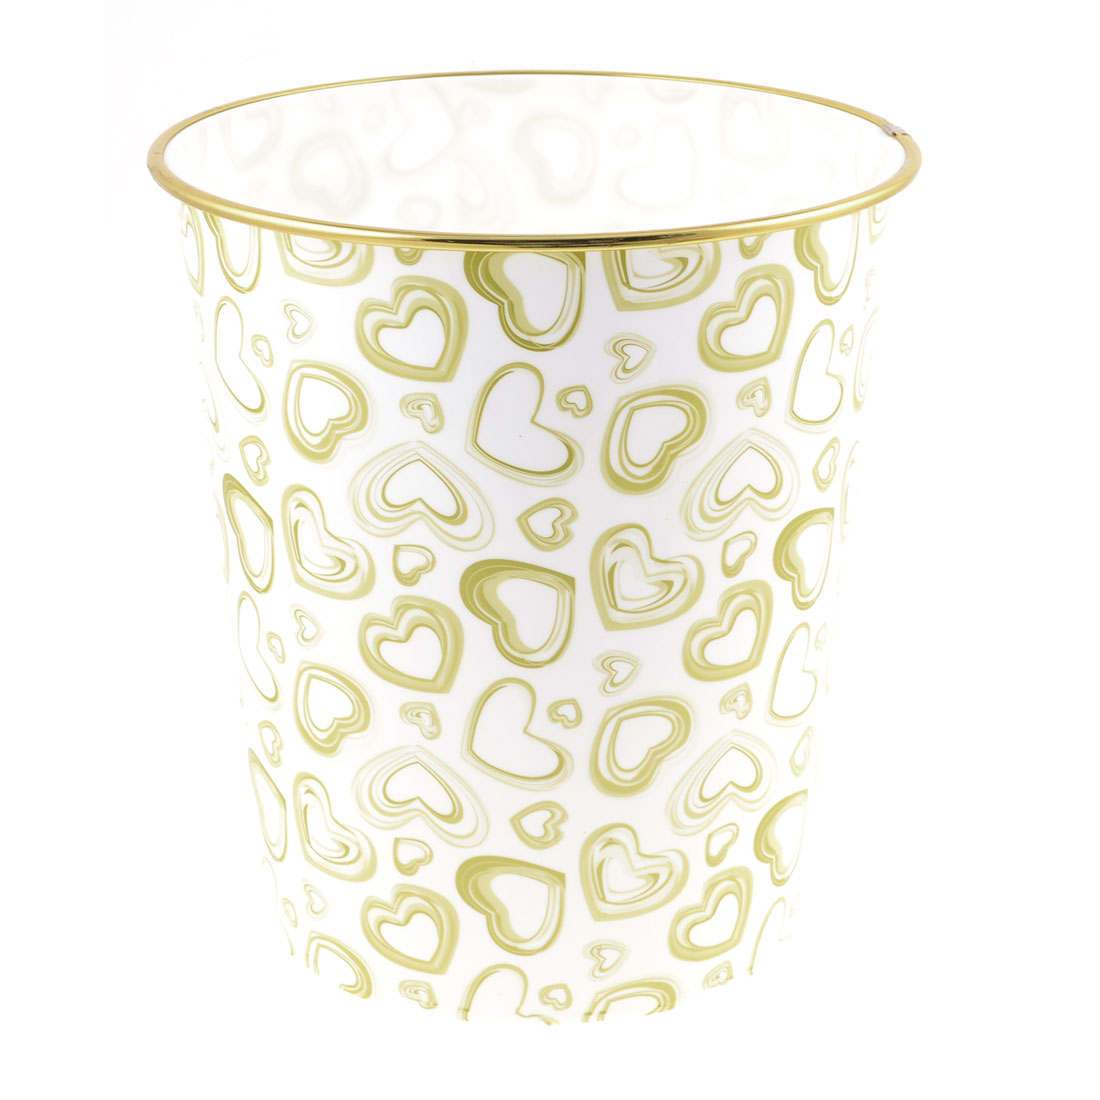 Olive Green Heart Printed Gold Tone Rim White Plastic Garbage Pail